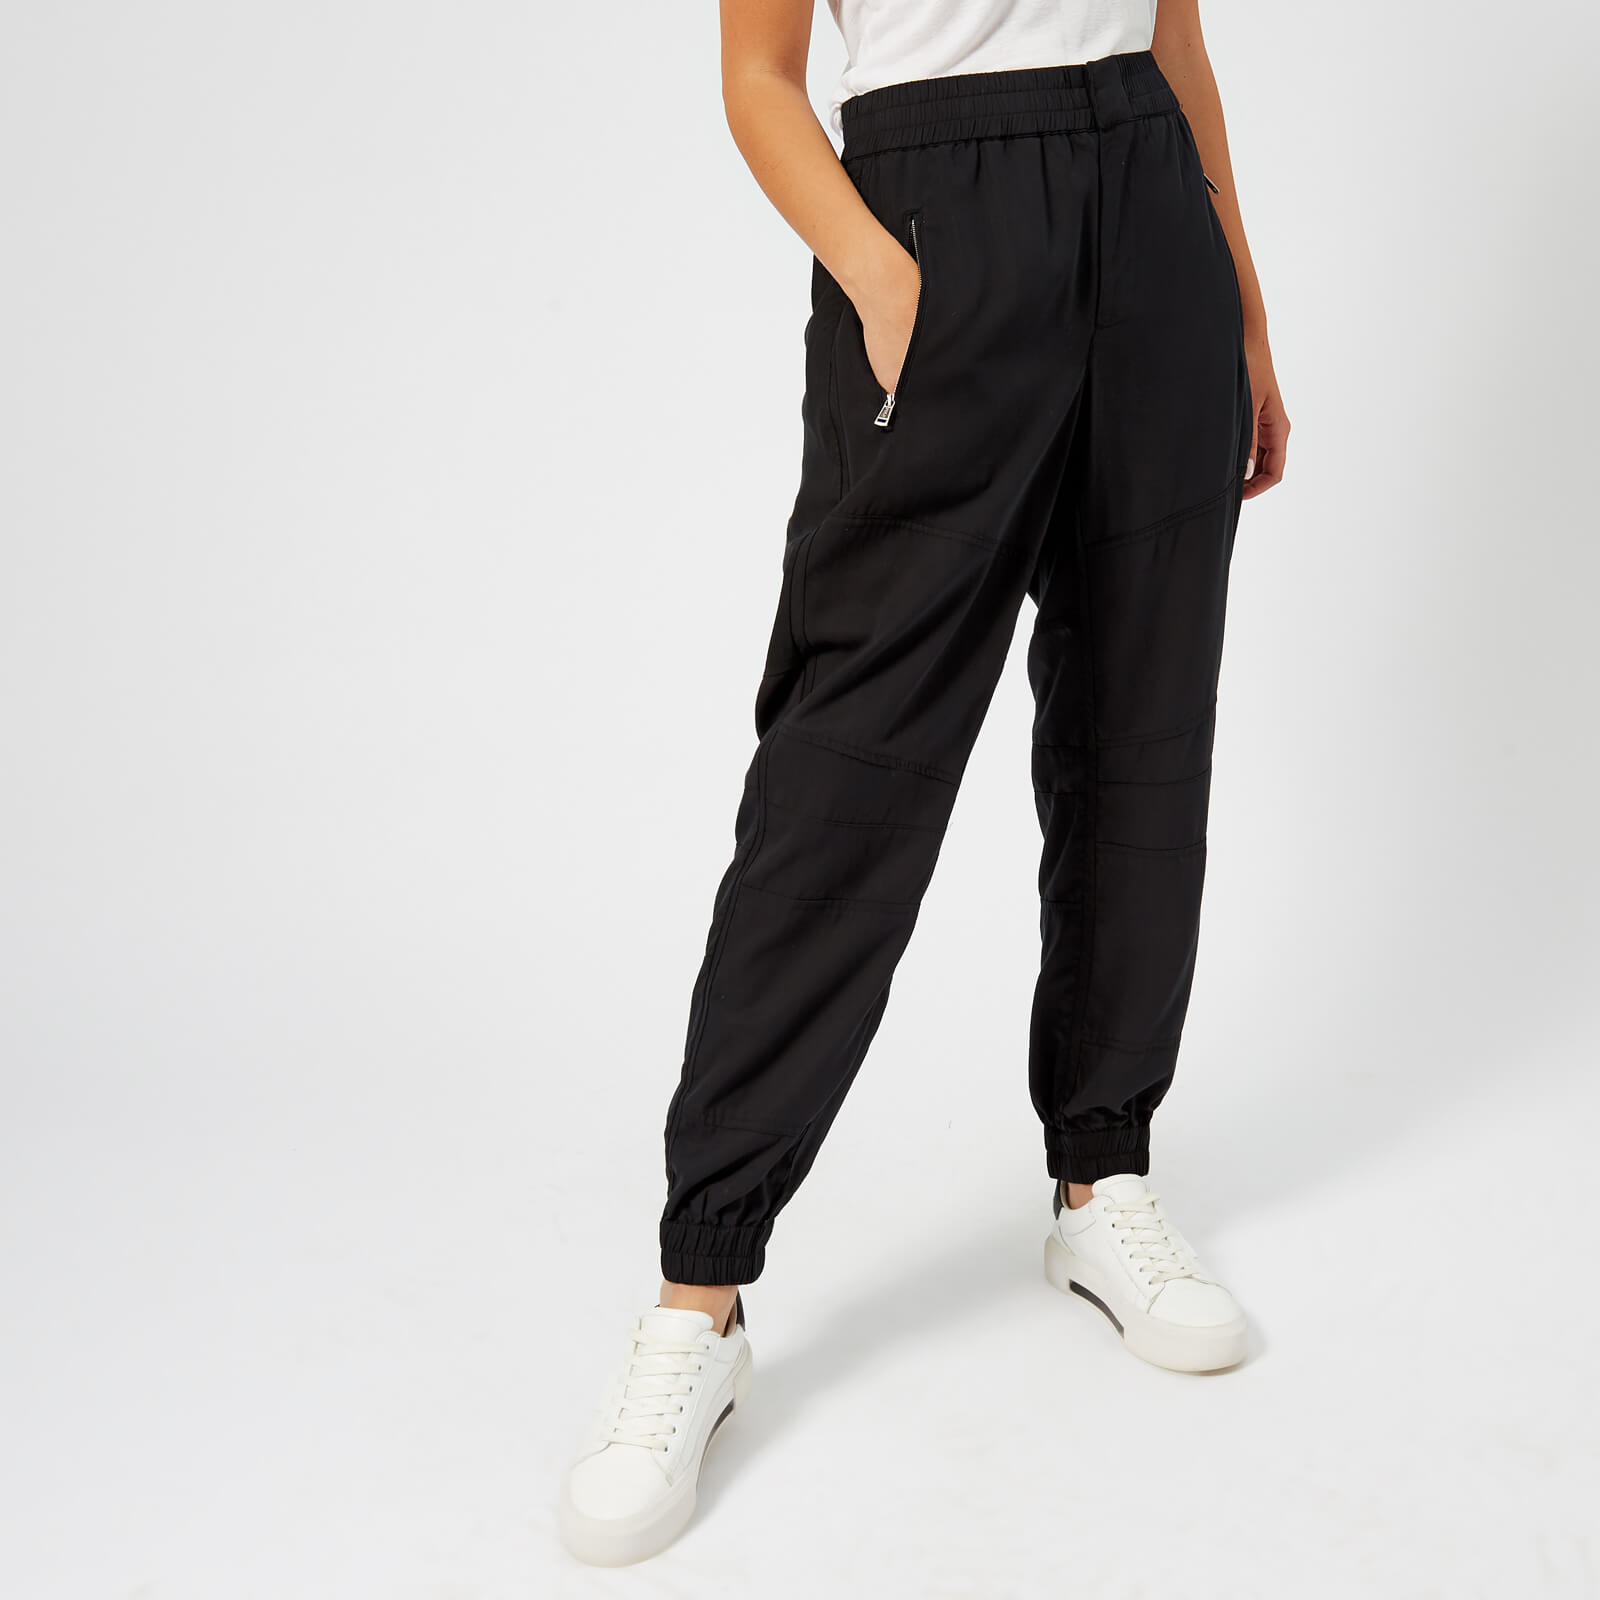 Black Cargo Lauren Slim Women's Polo Ralph Pants rtBhxsdCoQ